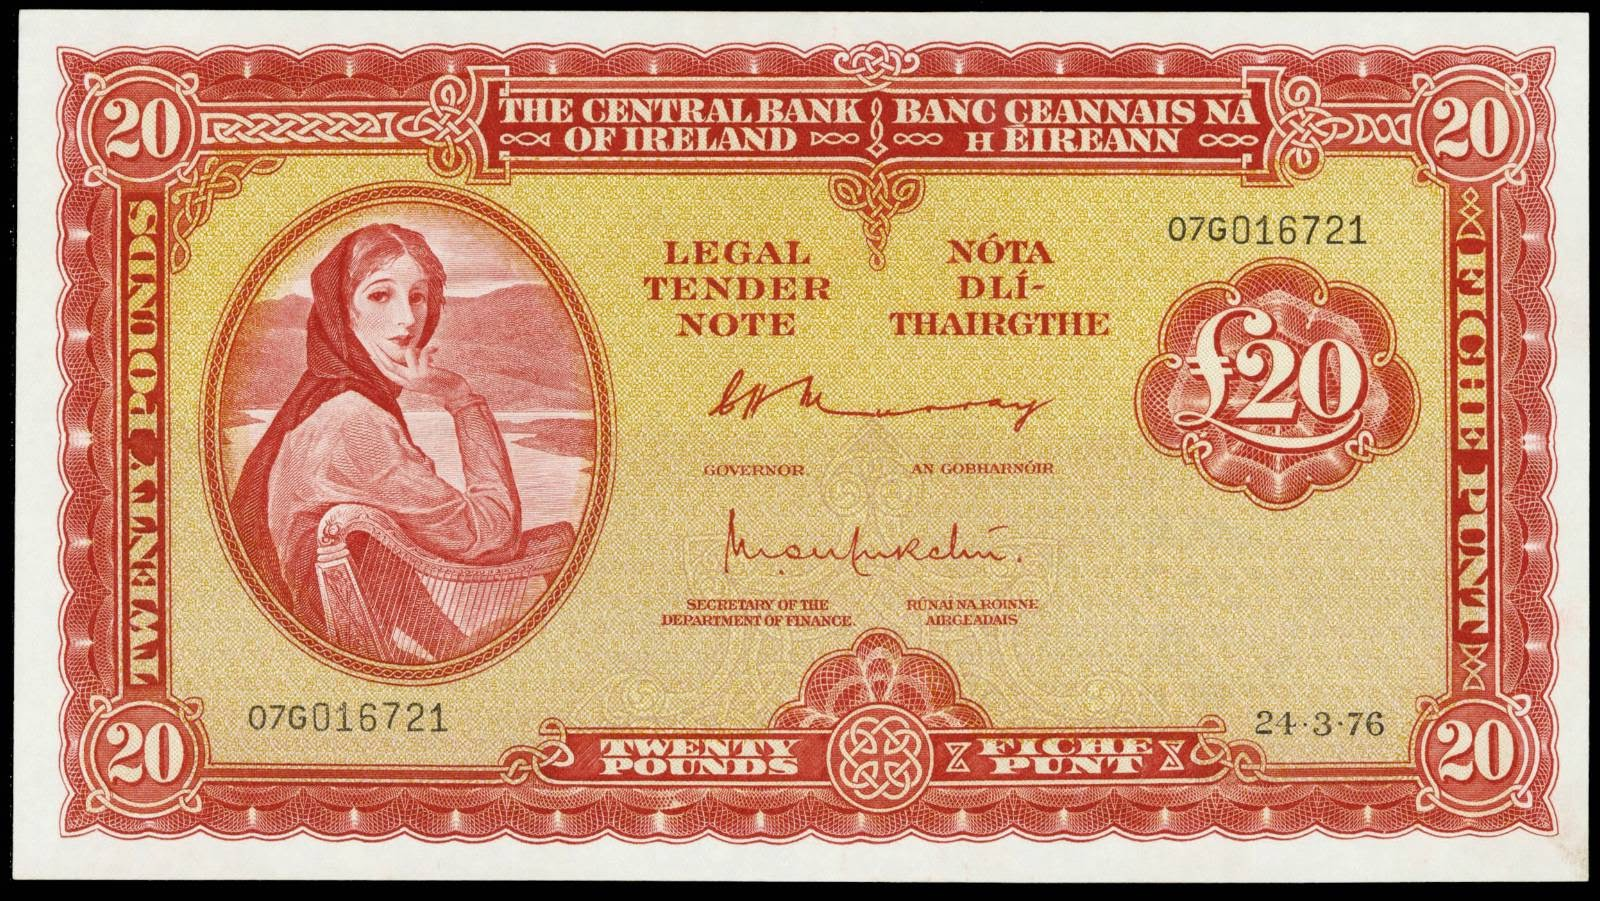 Ireland banknotes 20 Pound note Lady Lavery